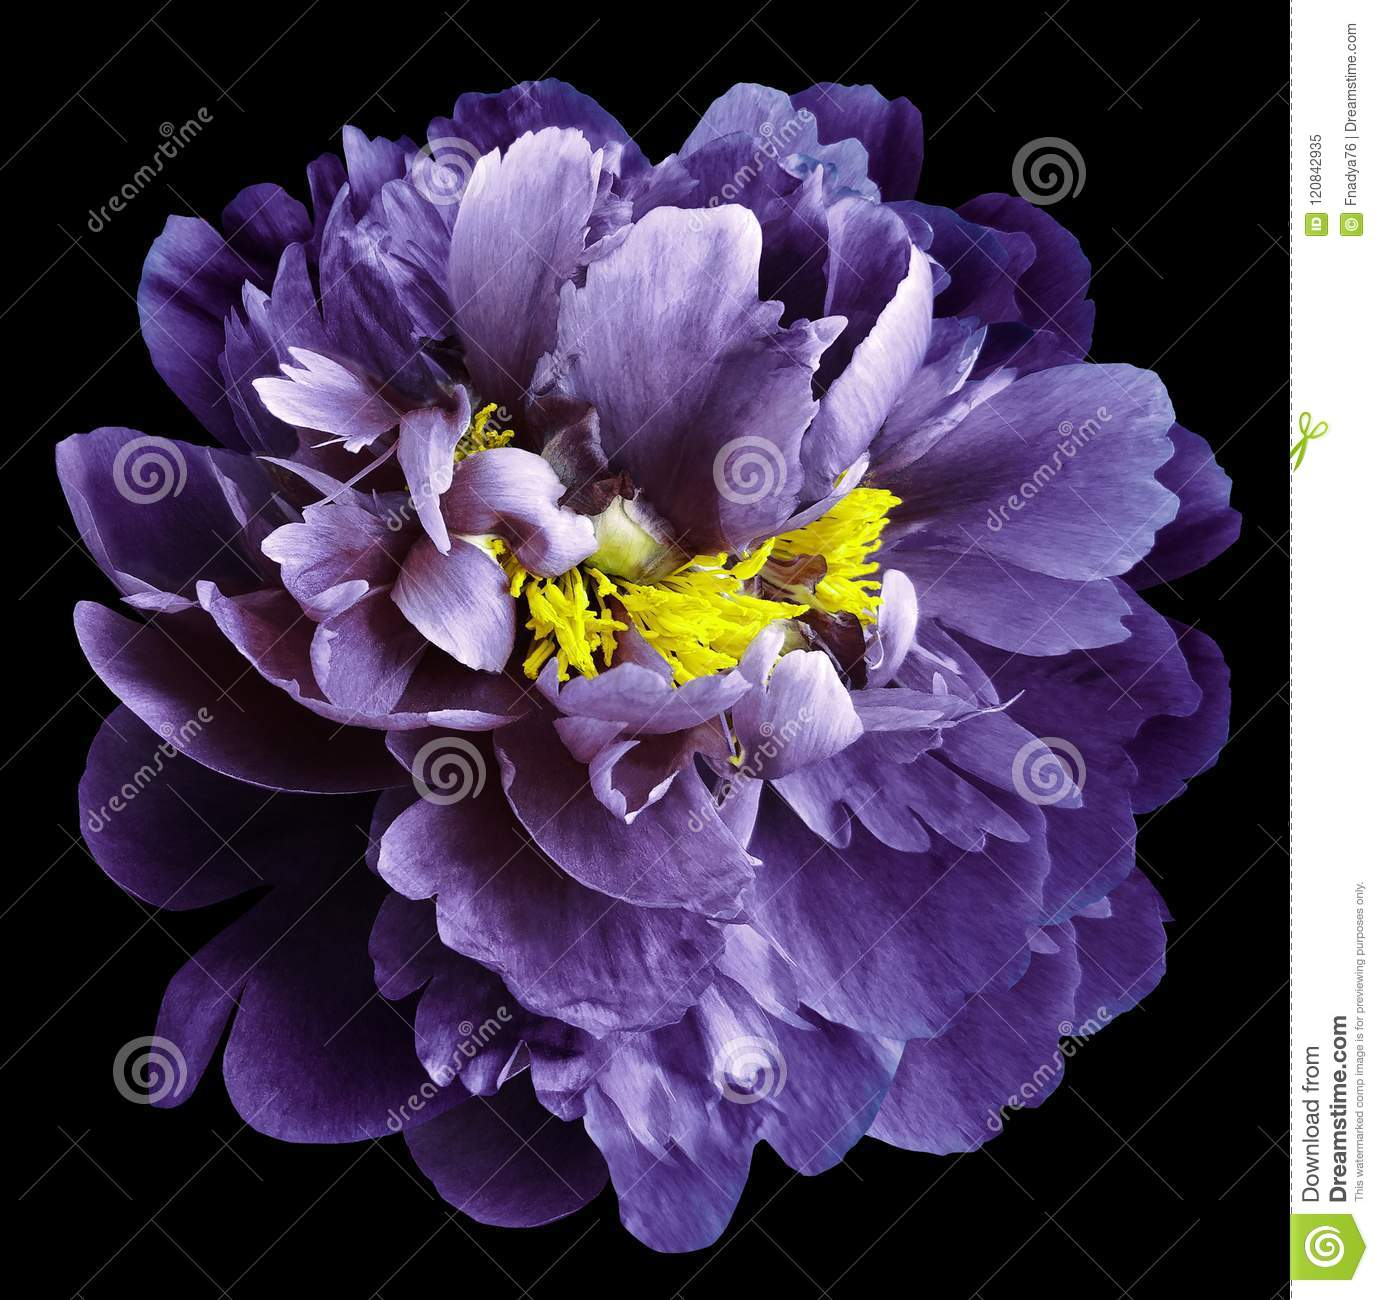 Purple Peony Flower With Yellow Stamens On An Isolated Black